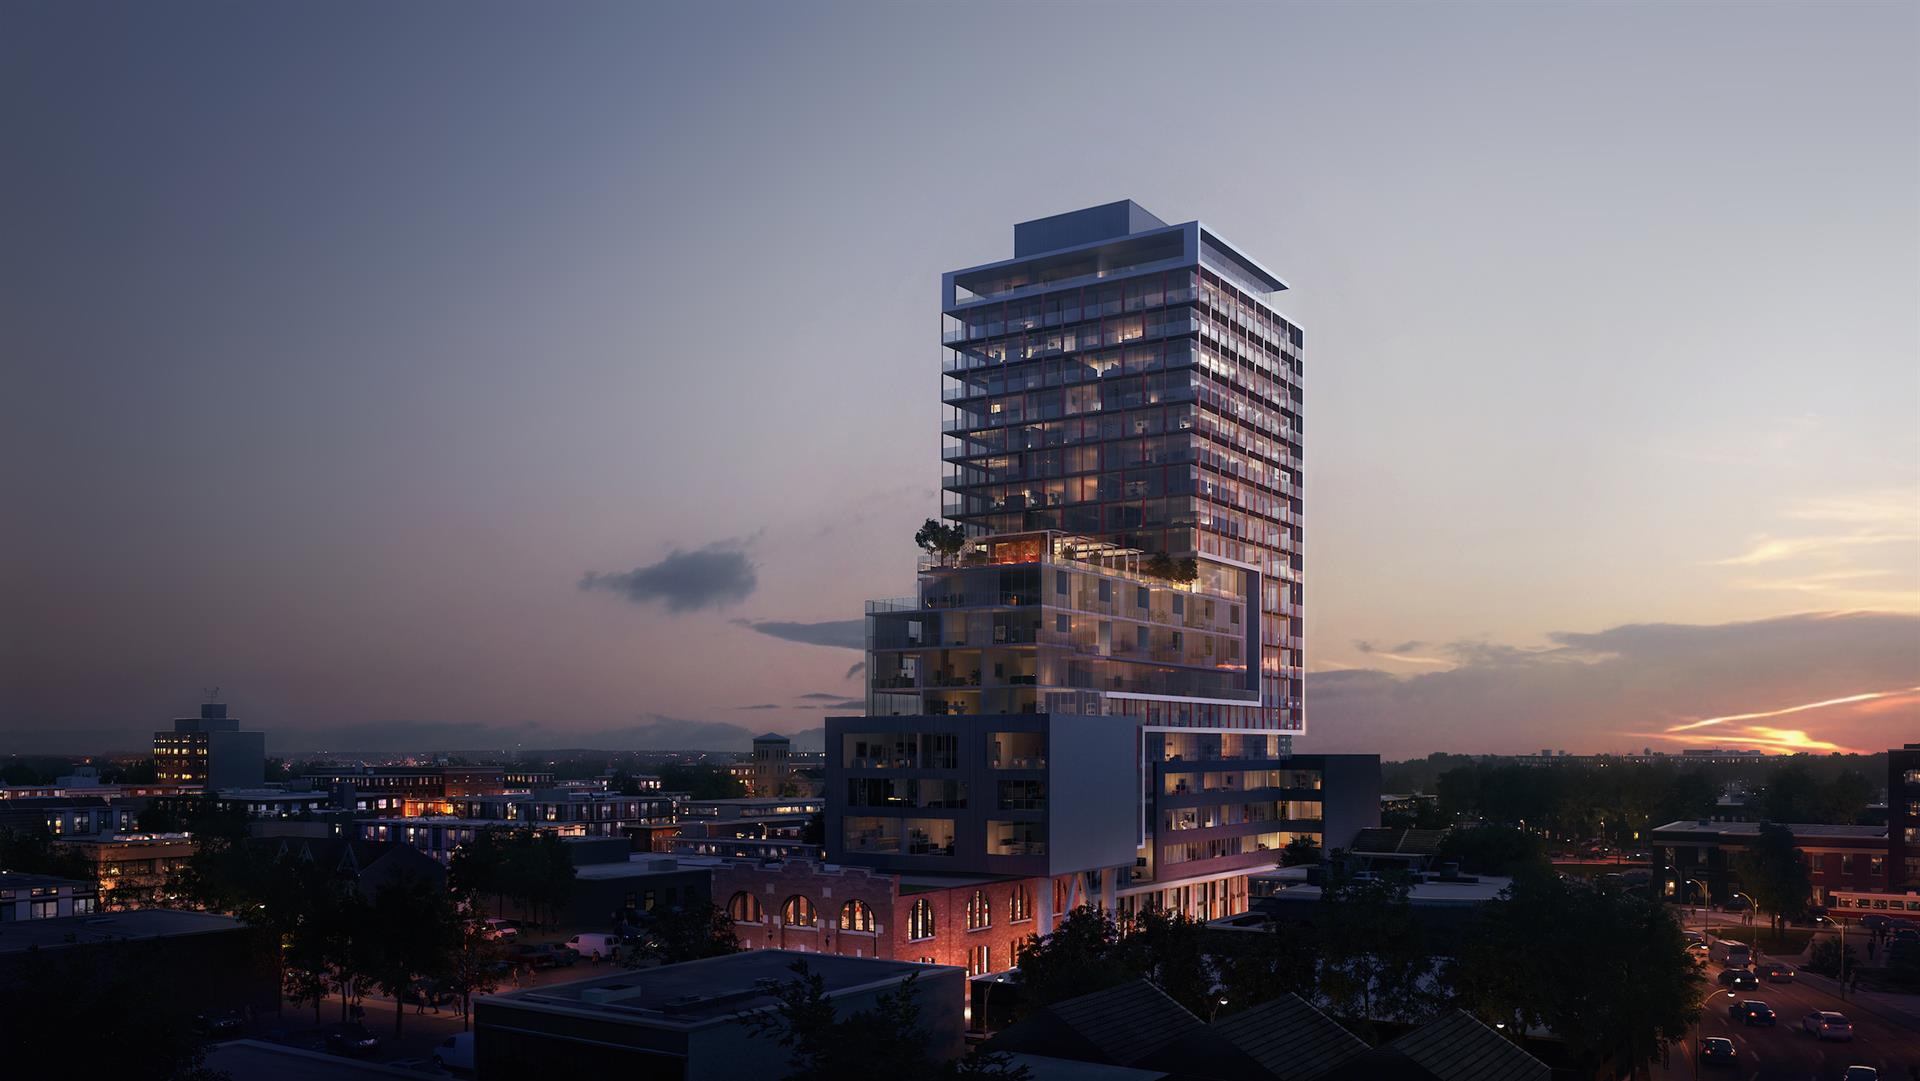 East United Condos - Check out this Bold Condo Design! Image